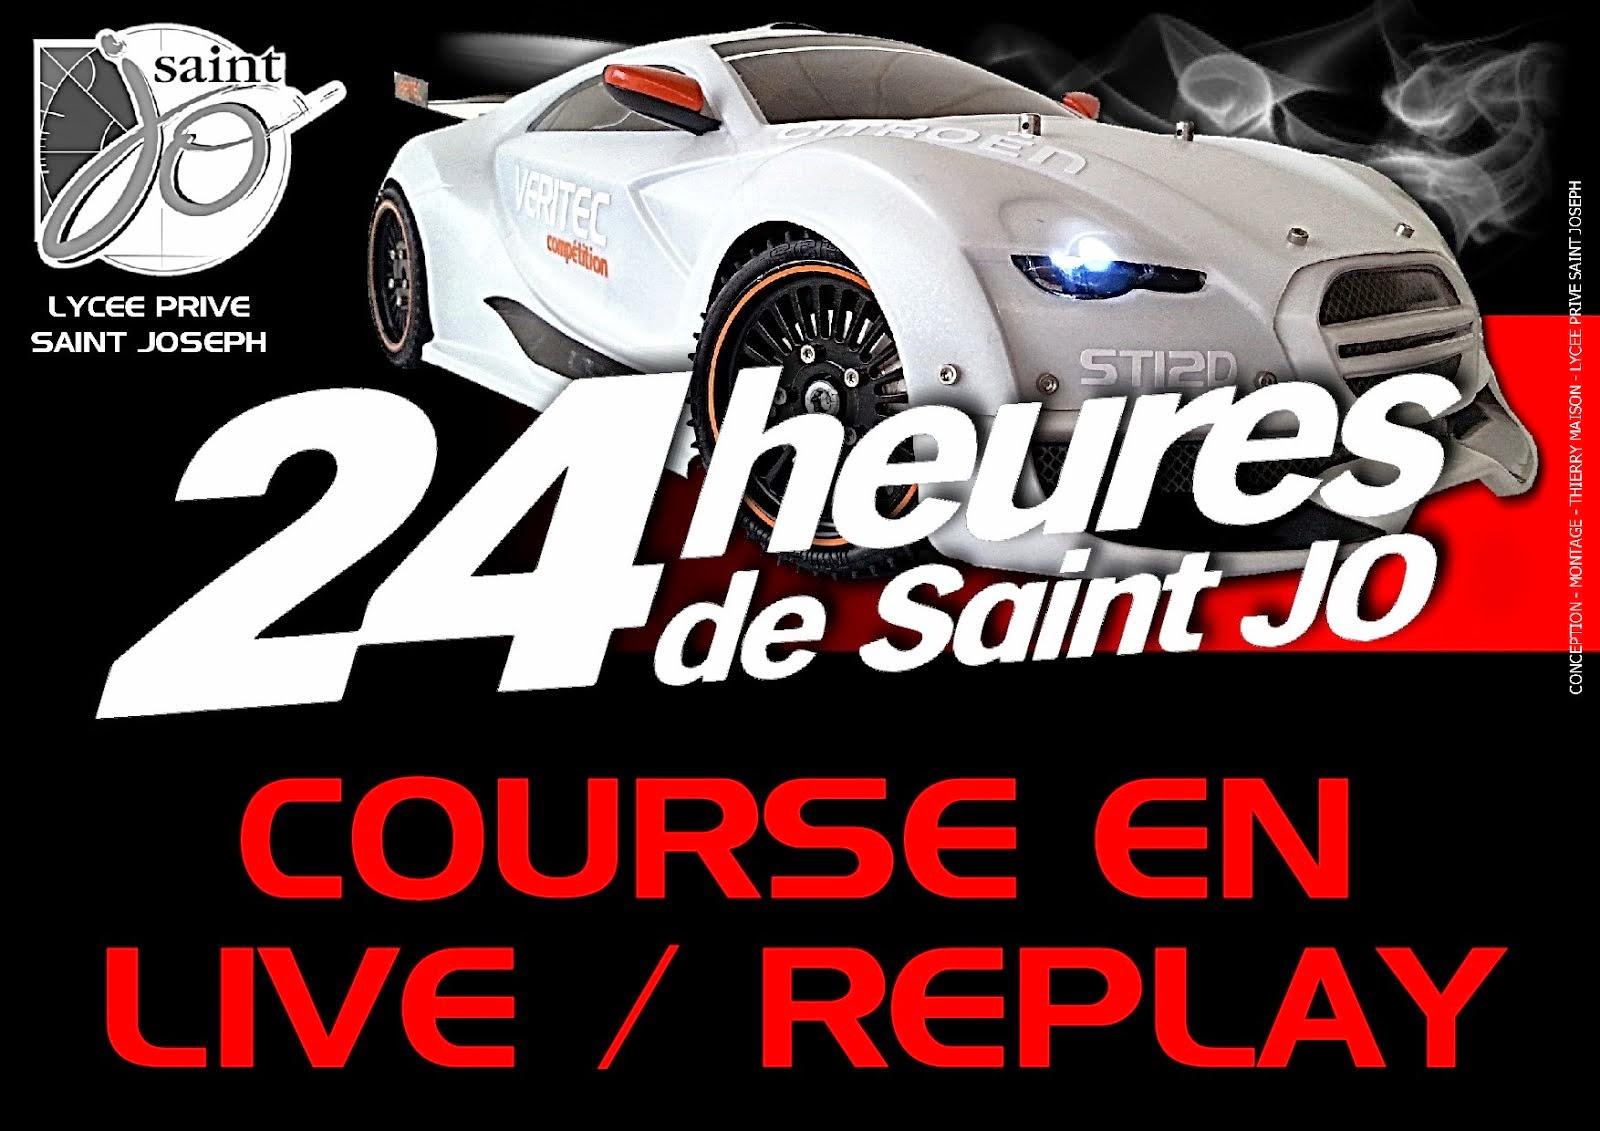 LIVE / REPLAY BY PIERRE HACK